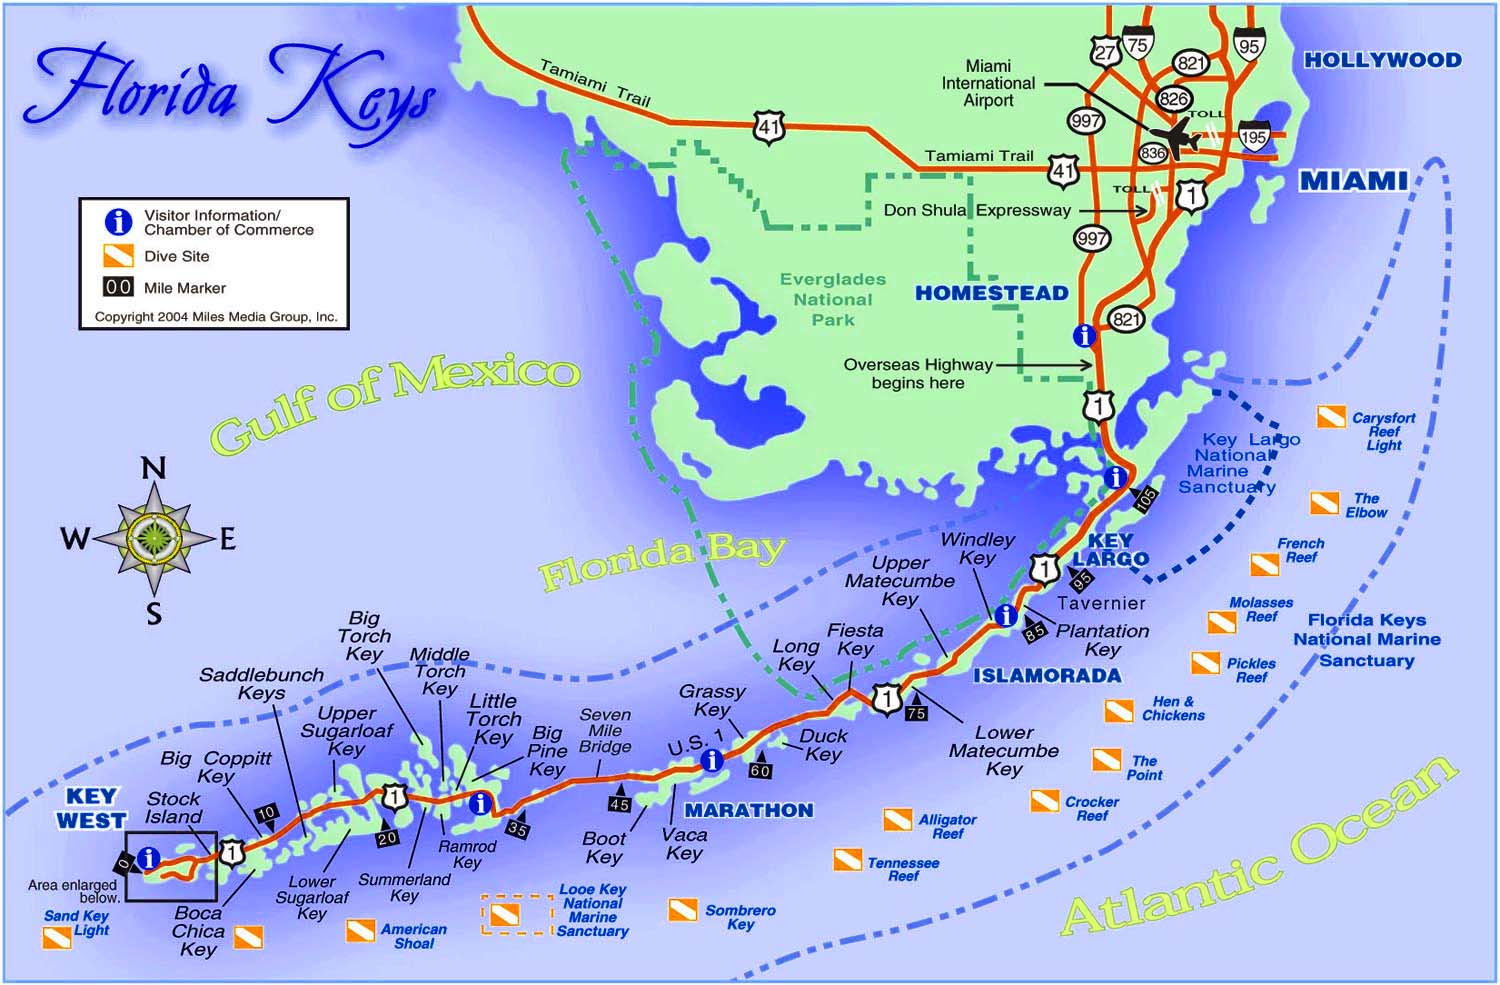 Best Florida Keys Beaches Map And Information - Florida Keys - Florida Springs Diving Map